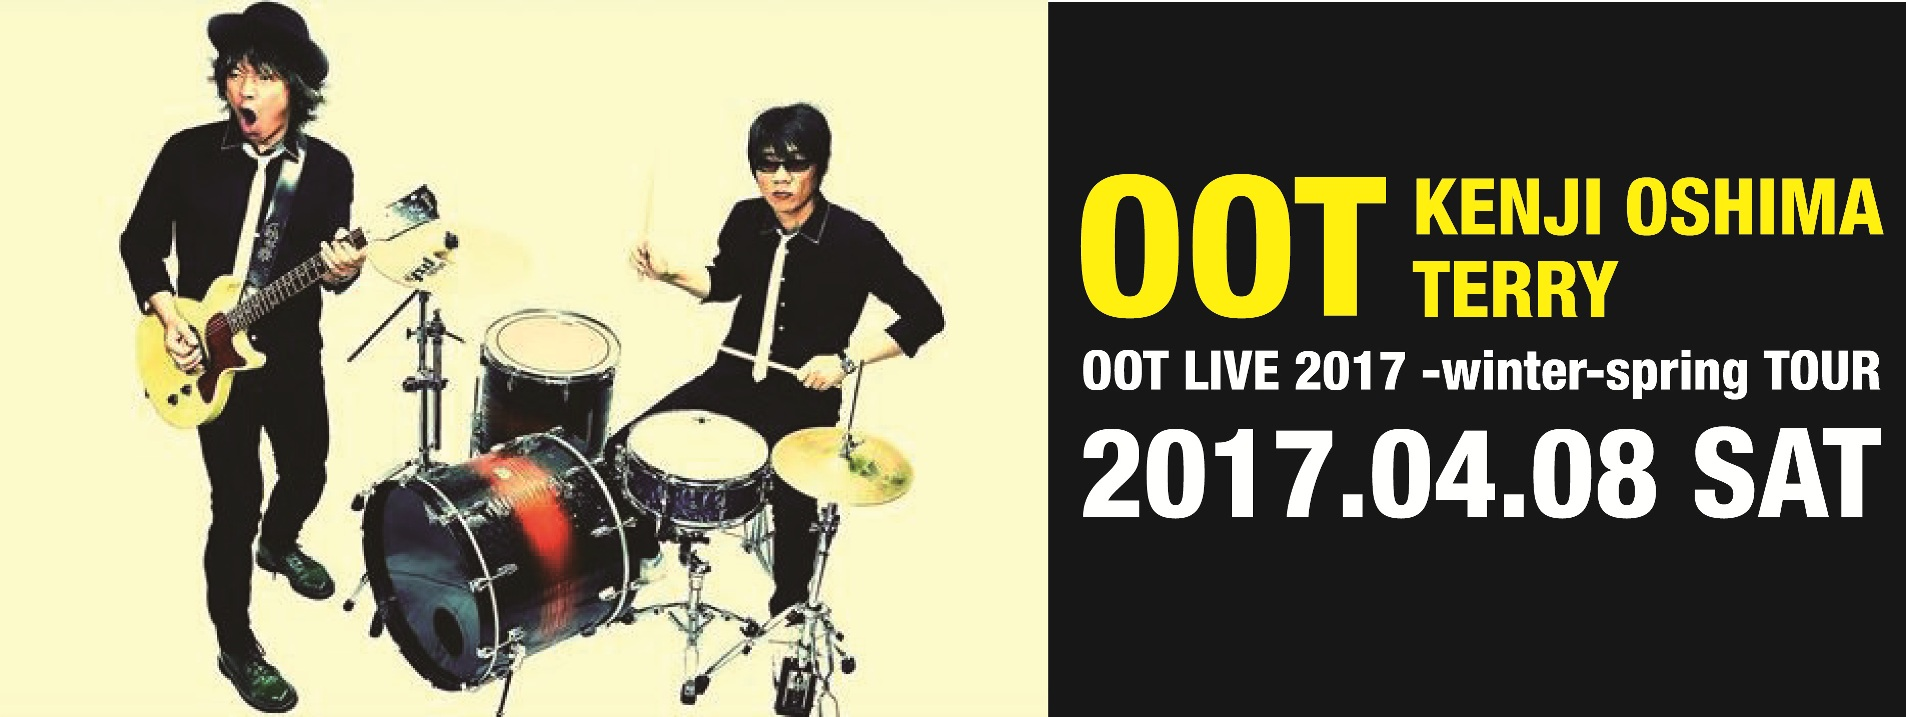 OOT LIVE 2017